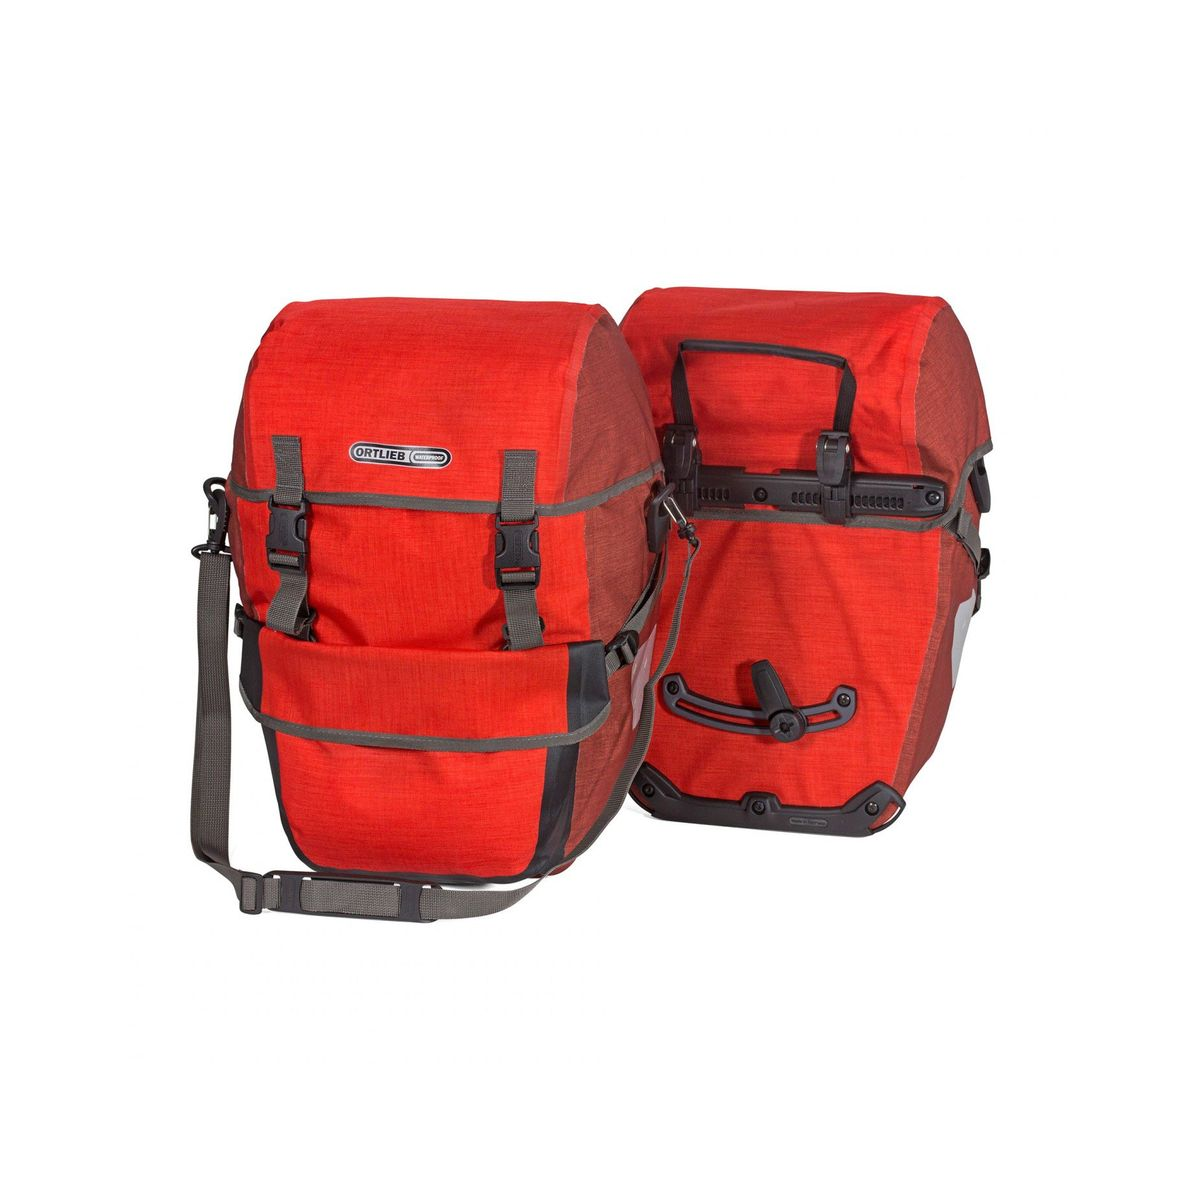 Bike-Packer Plus Set of Two Pannier Bags